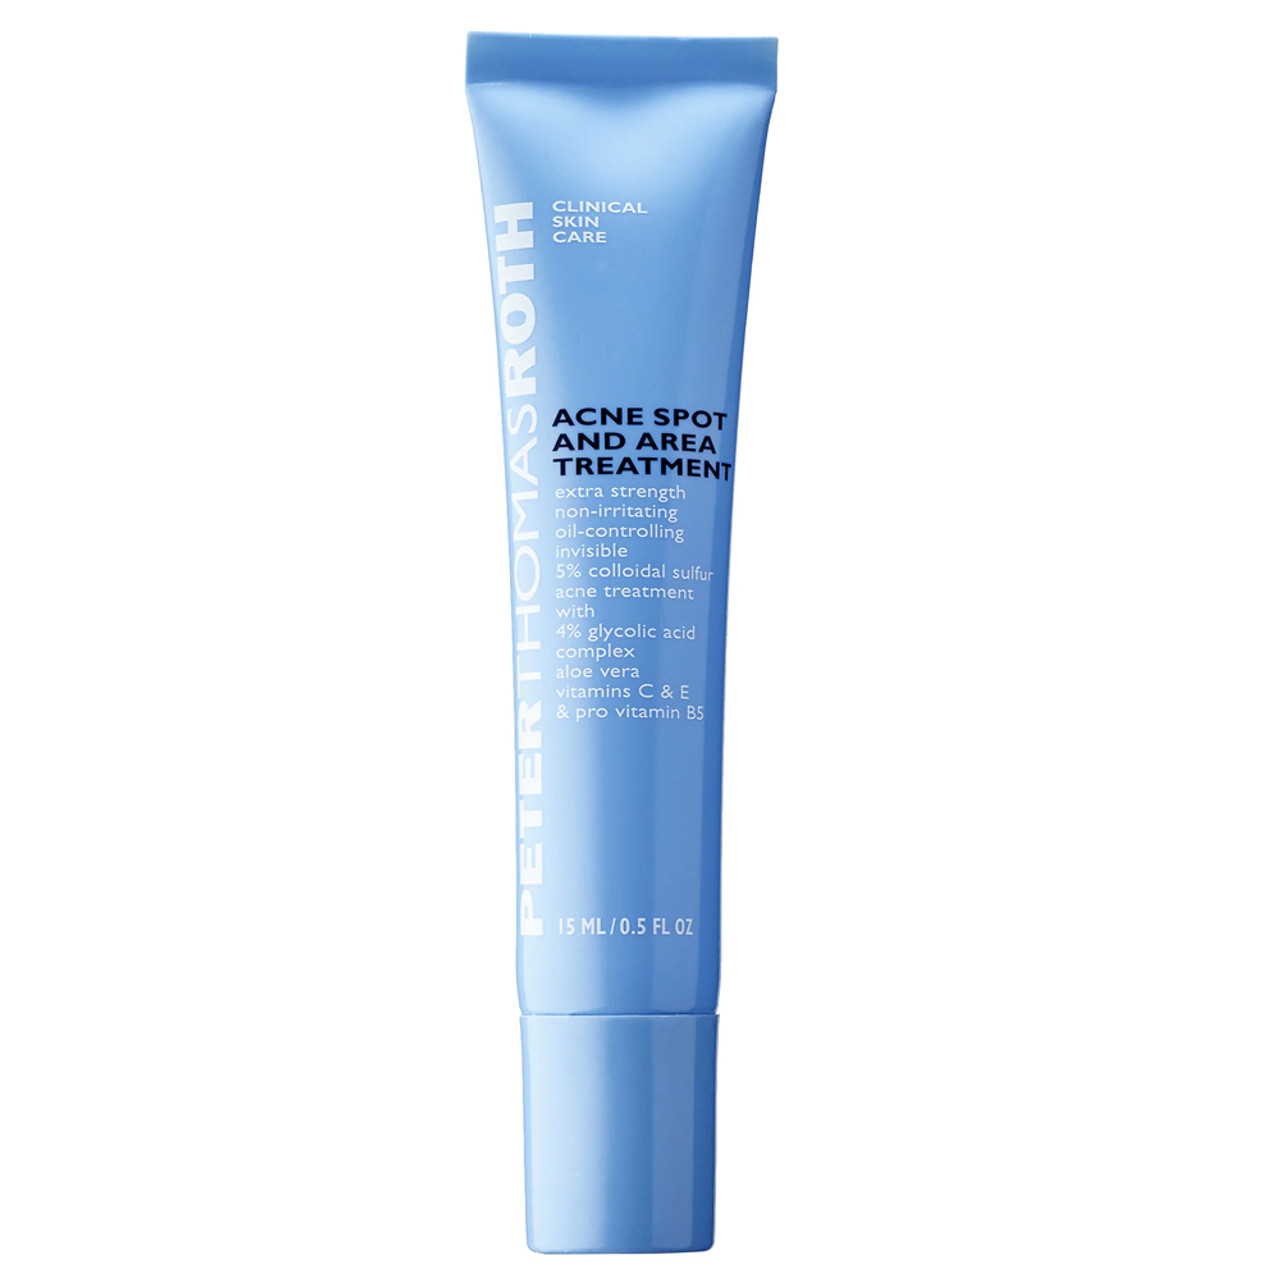 Peter Thomas Roth Acne Spot And Area Treatment